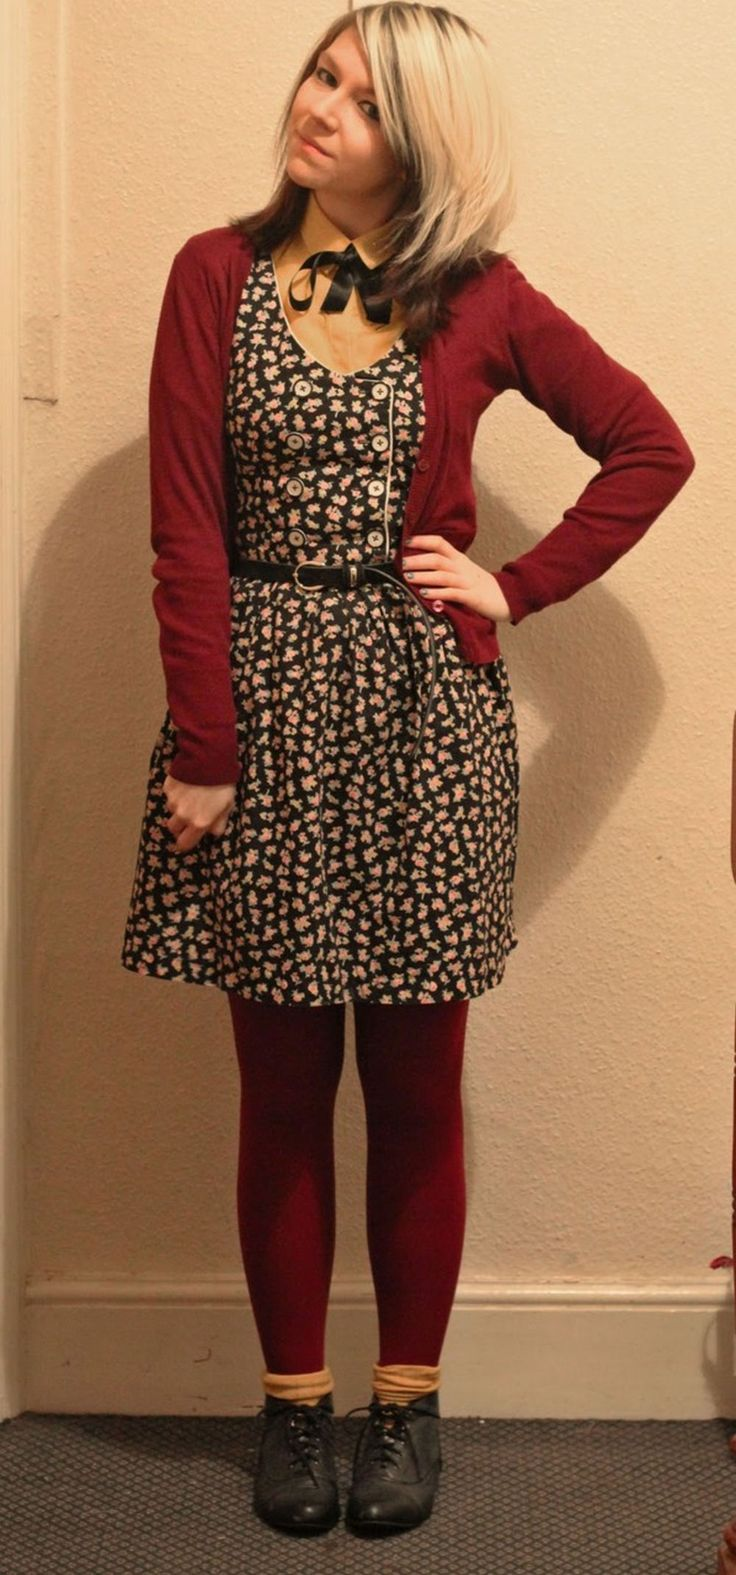 Dark red pantyhose layered with salmon socks on top + floral dress